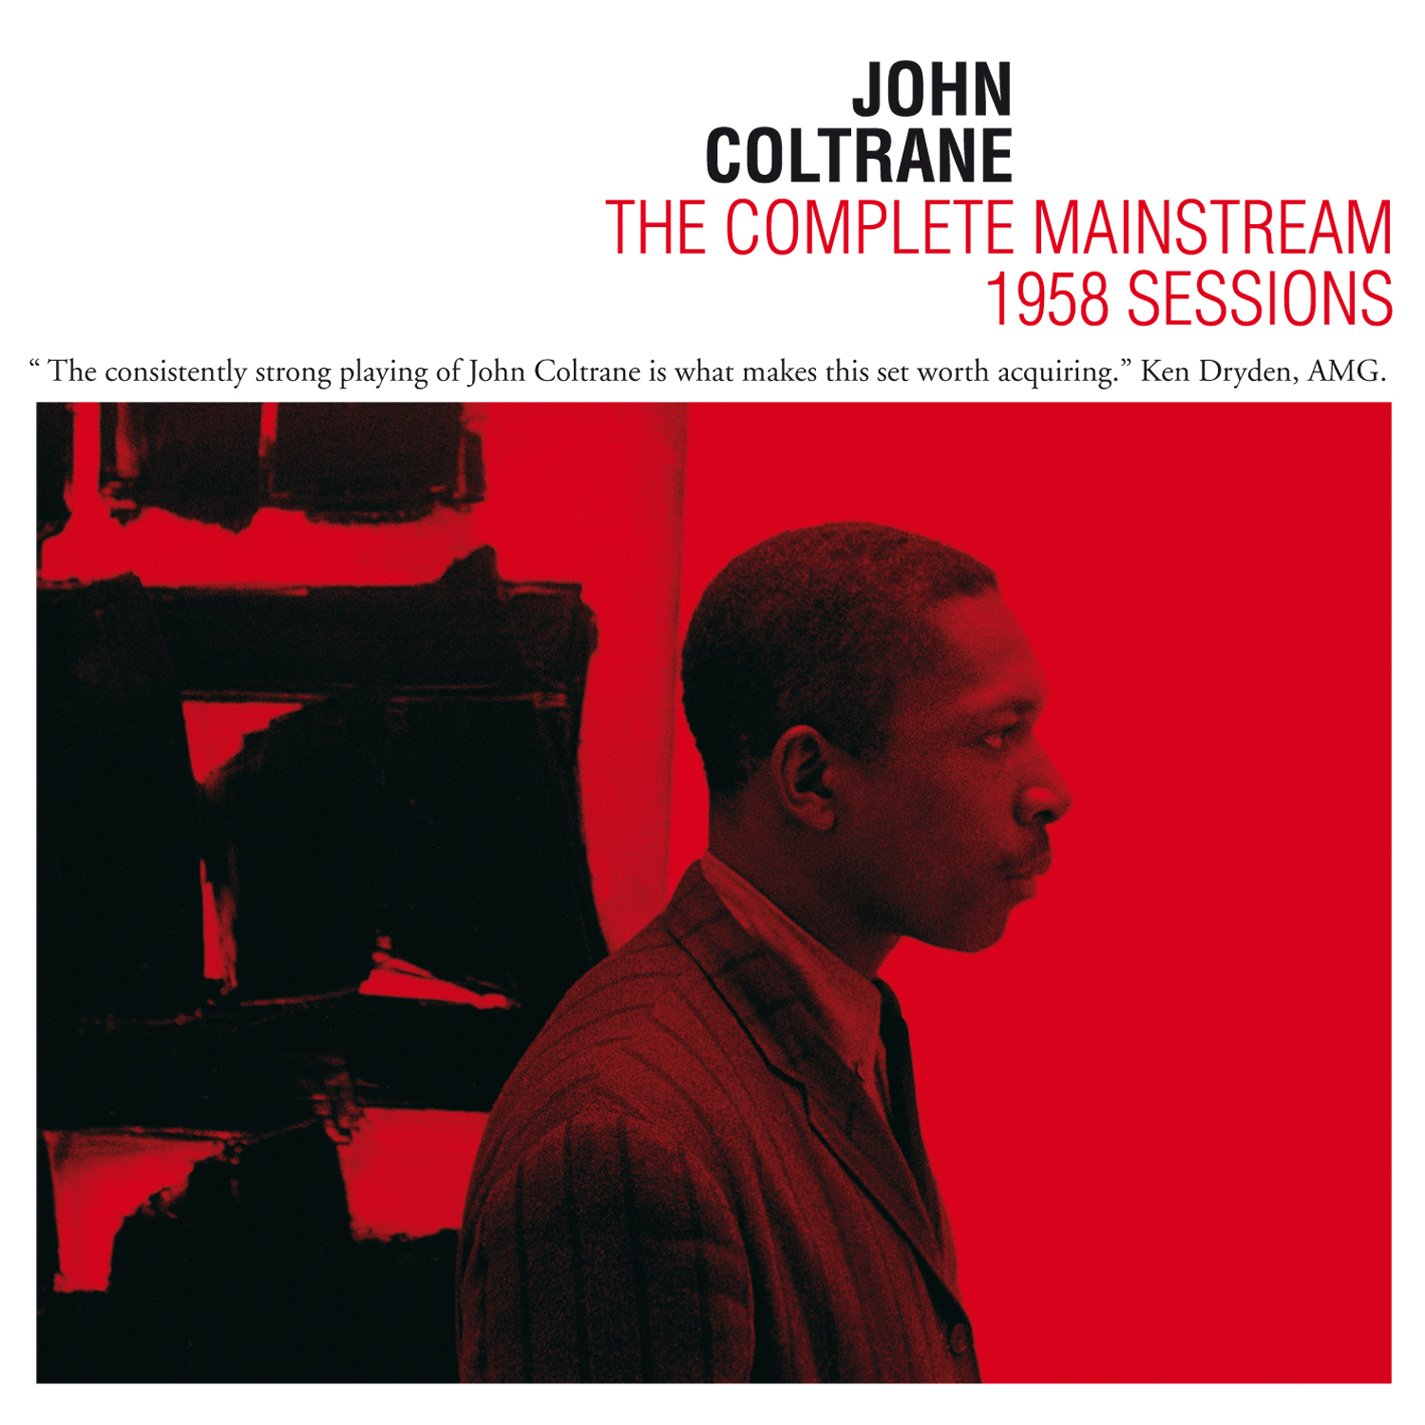 John Coltrane - Complete Mainstream 1958 Sessions cover